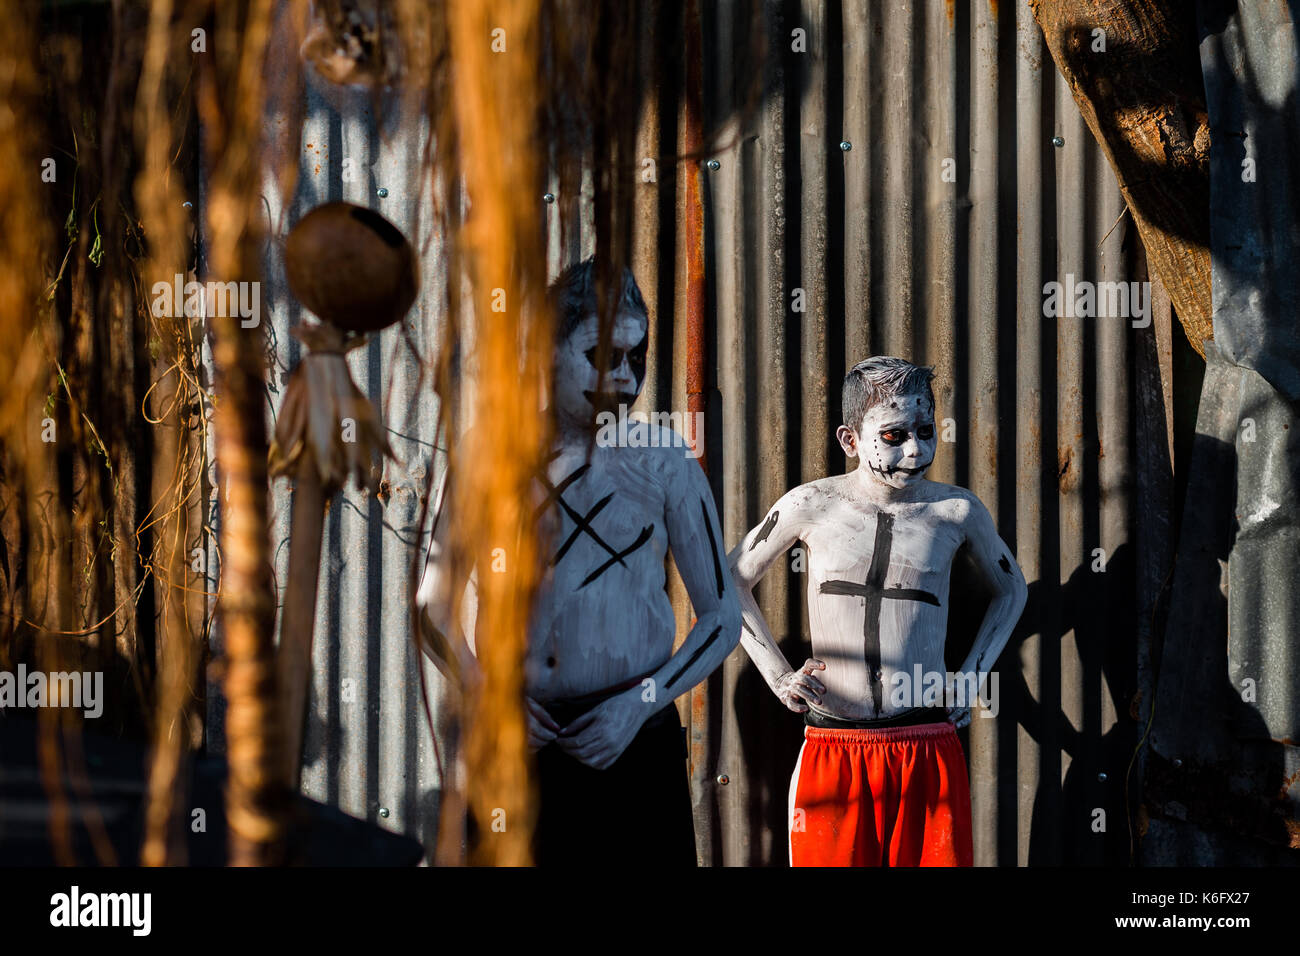 Salvadoran boys, having white body paint with death symbols, perform during the La Calabiuza parade at the Day of the Dead festivity in Tonacatepeque, - Stock Image